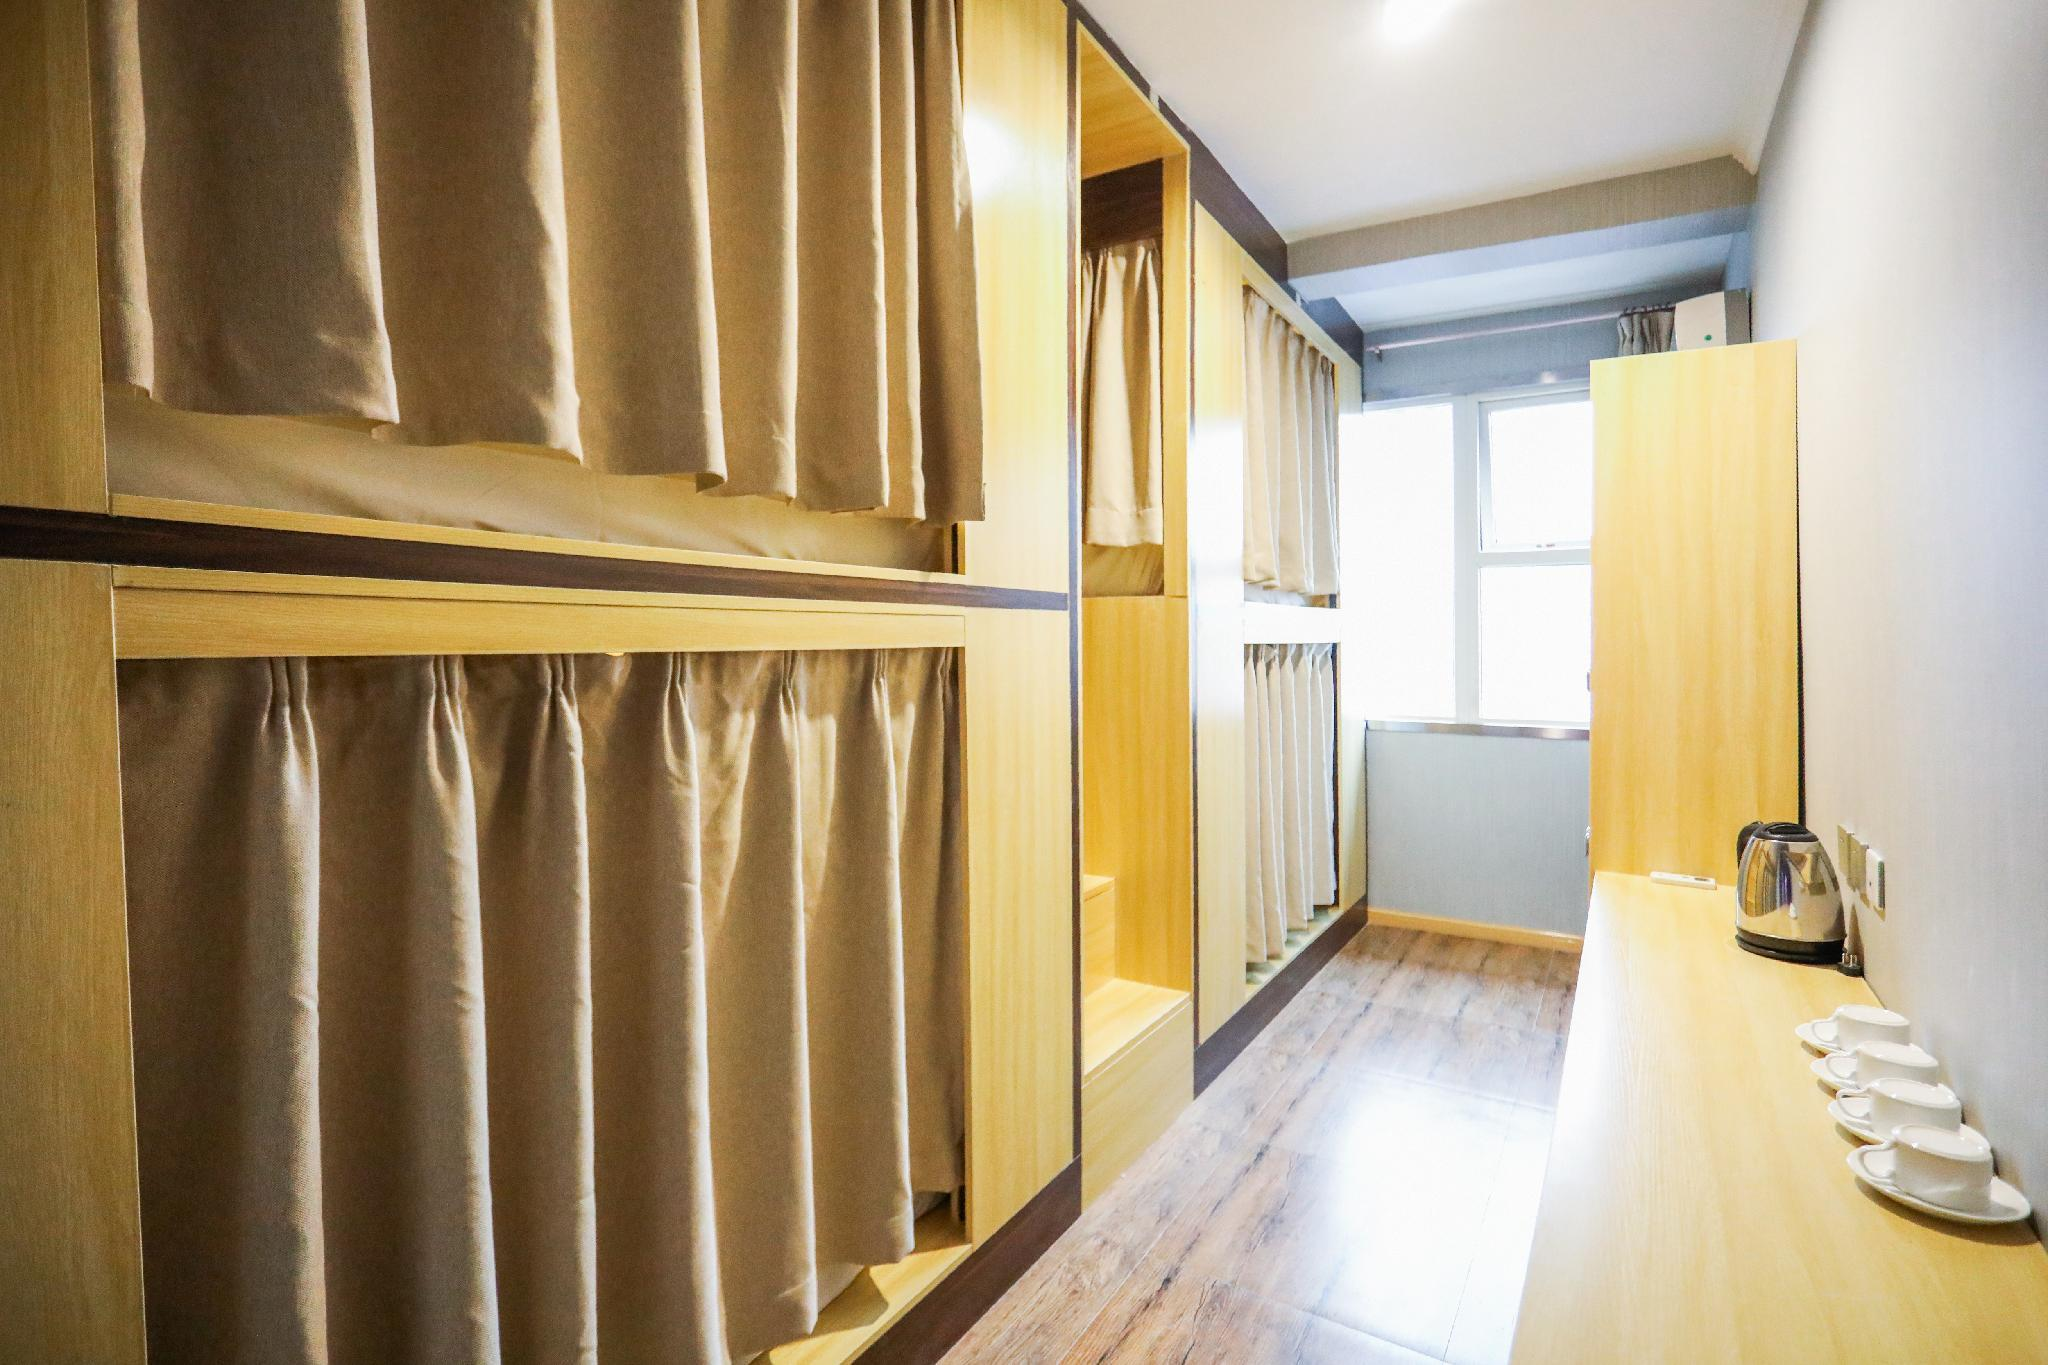 1 Person in 4-Bed Dormitory with Private Bathroom - Female Only